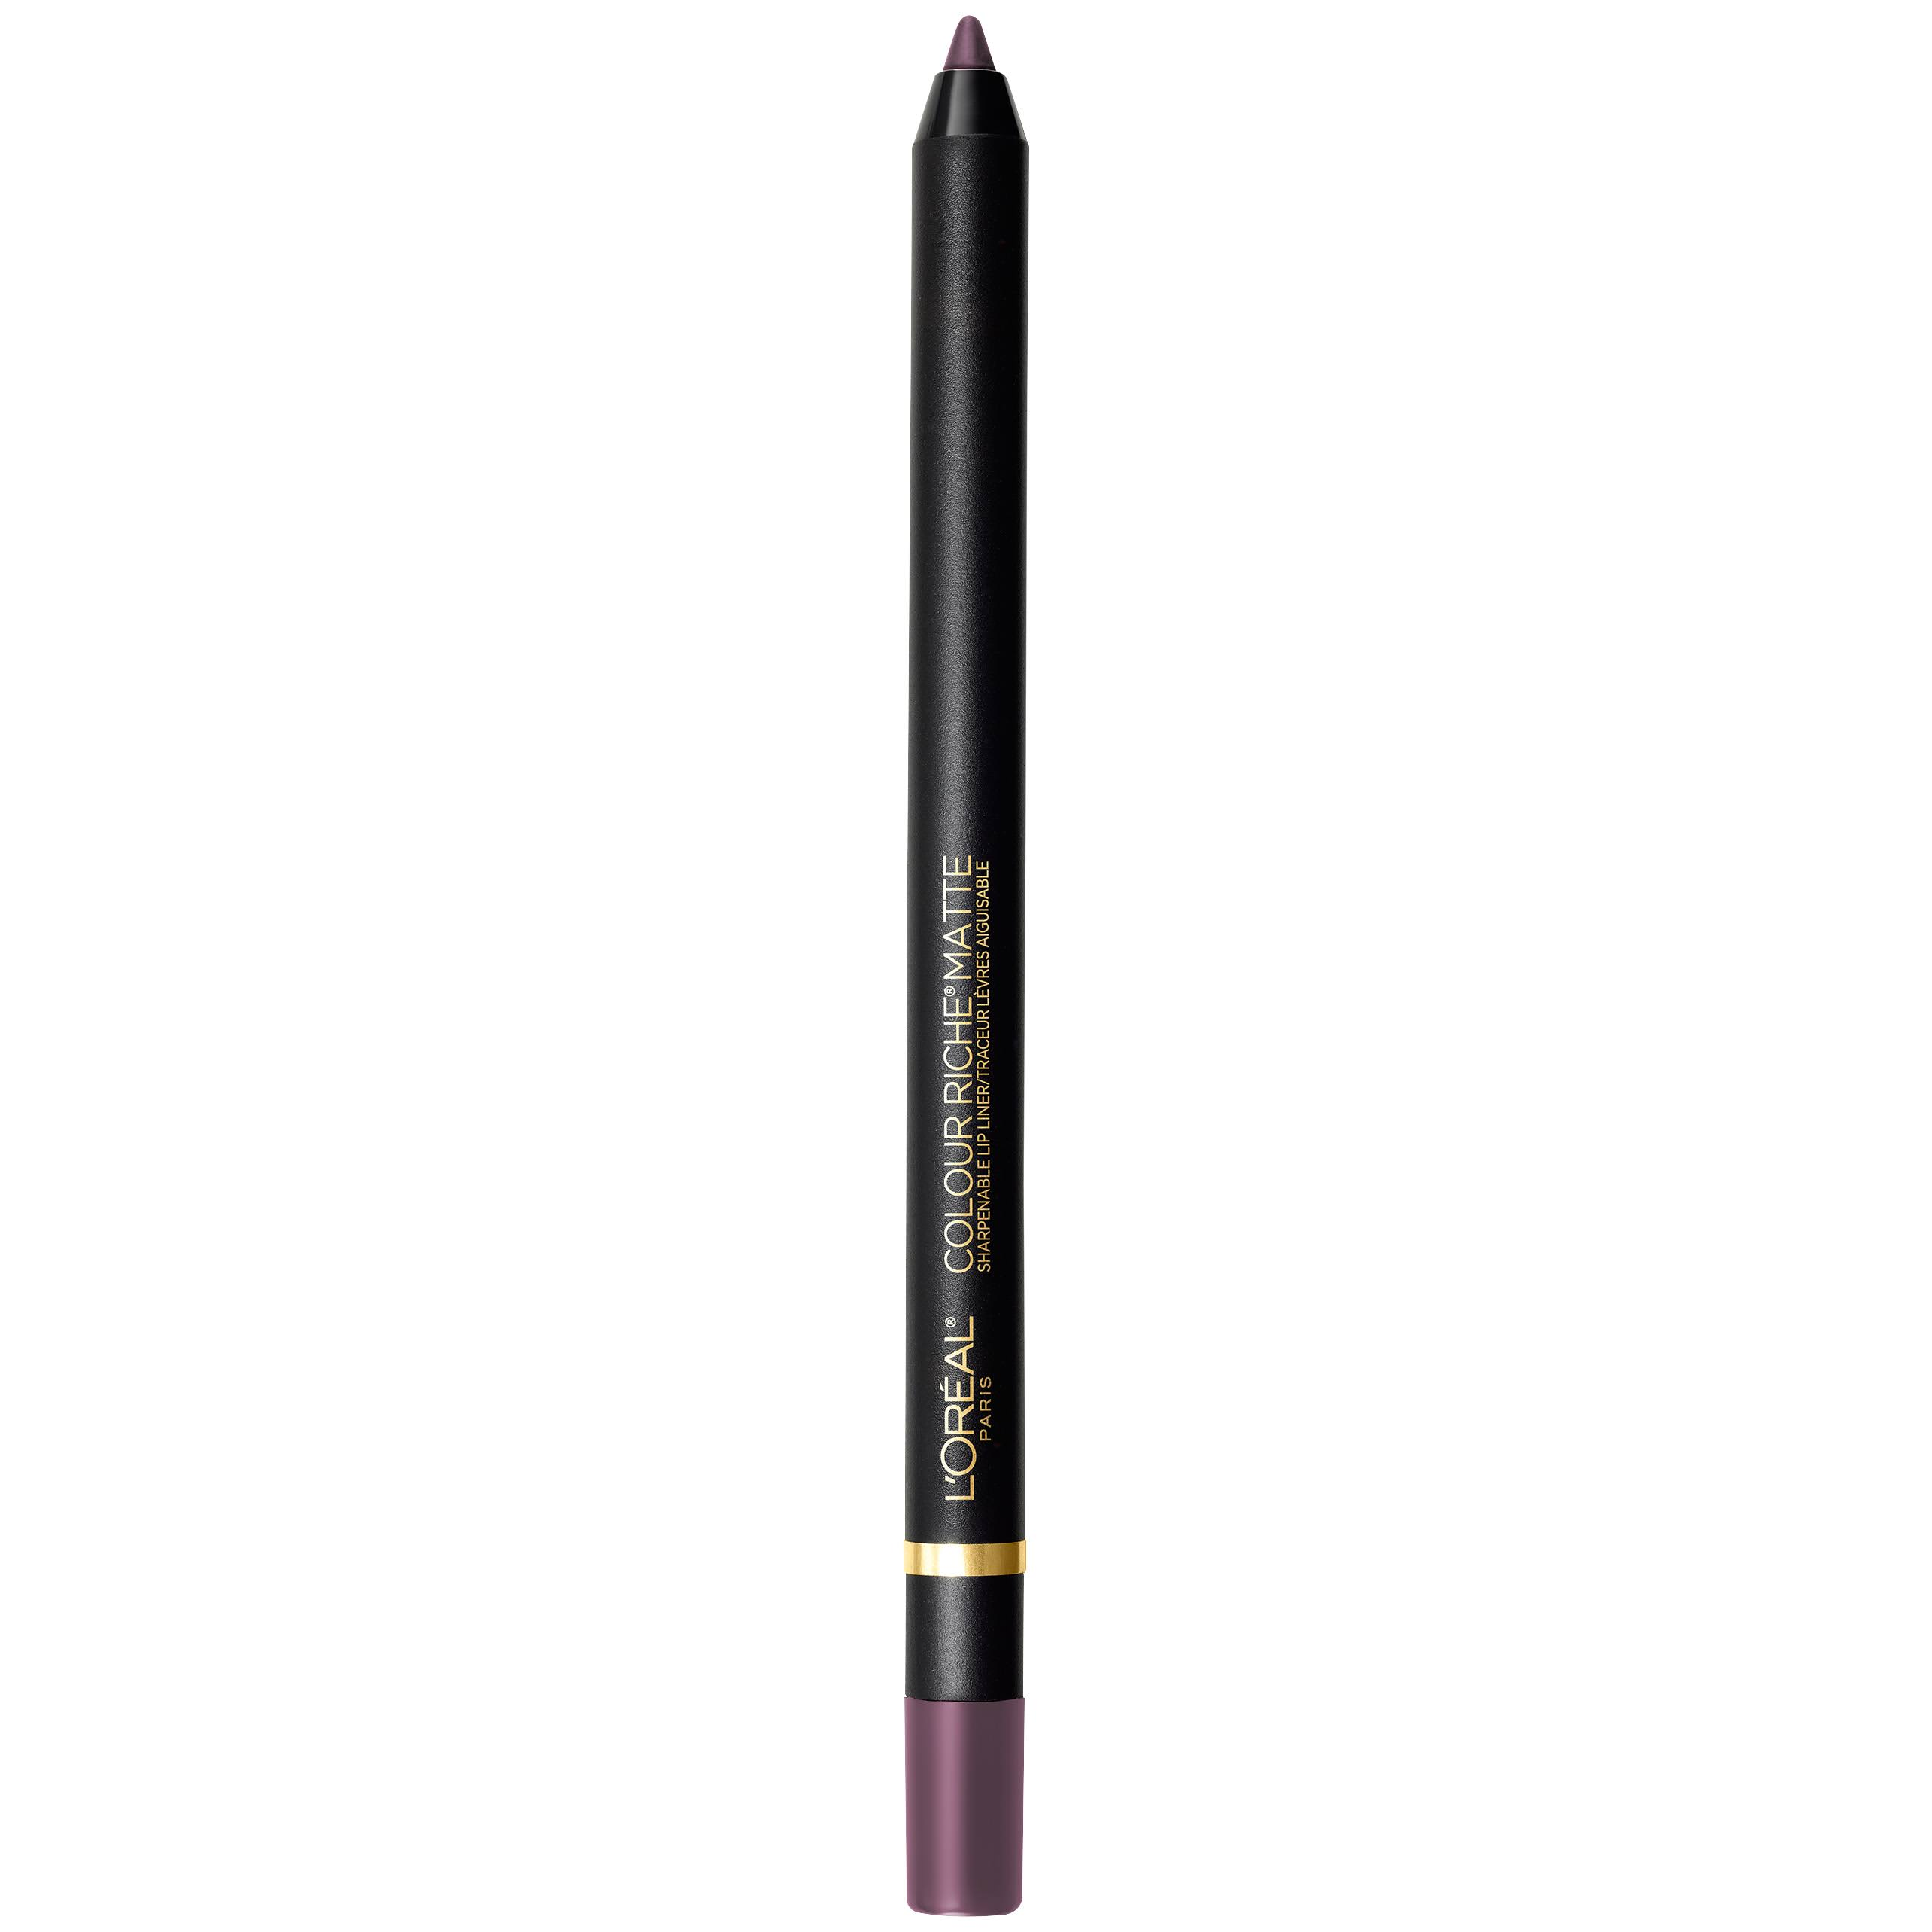 L'Oréal Colour Riche Matte Lip Liner - Killed The Matte, 0.04oz